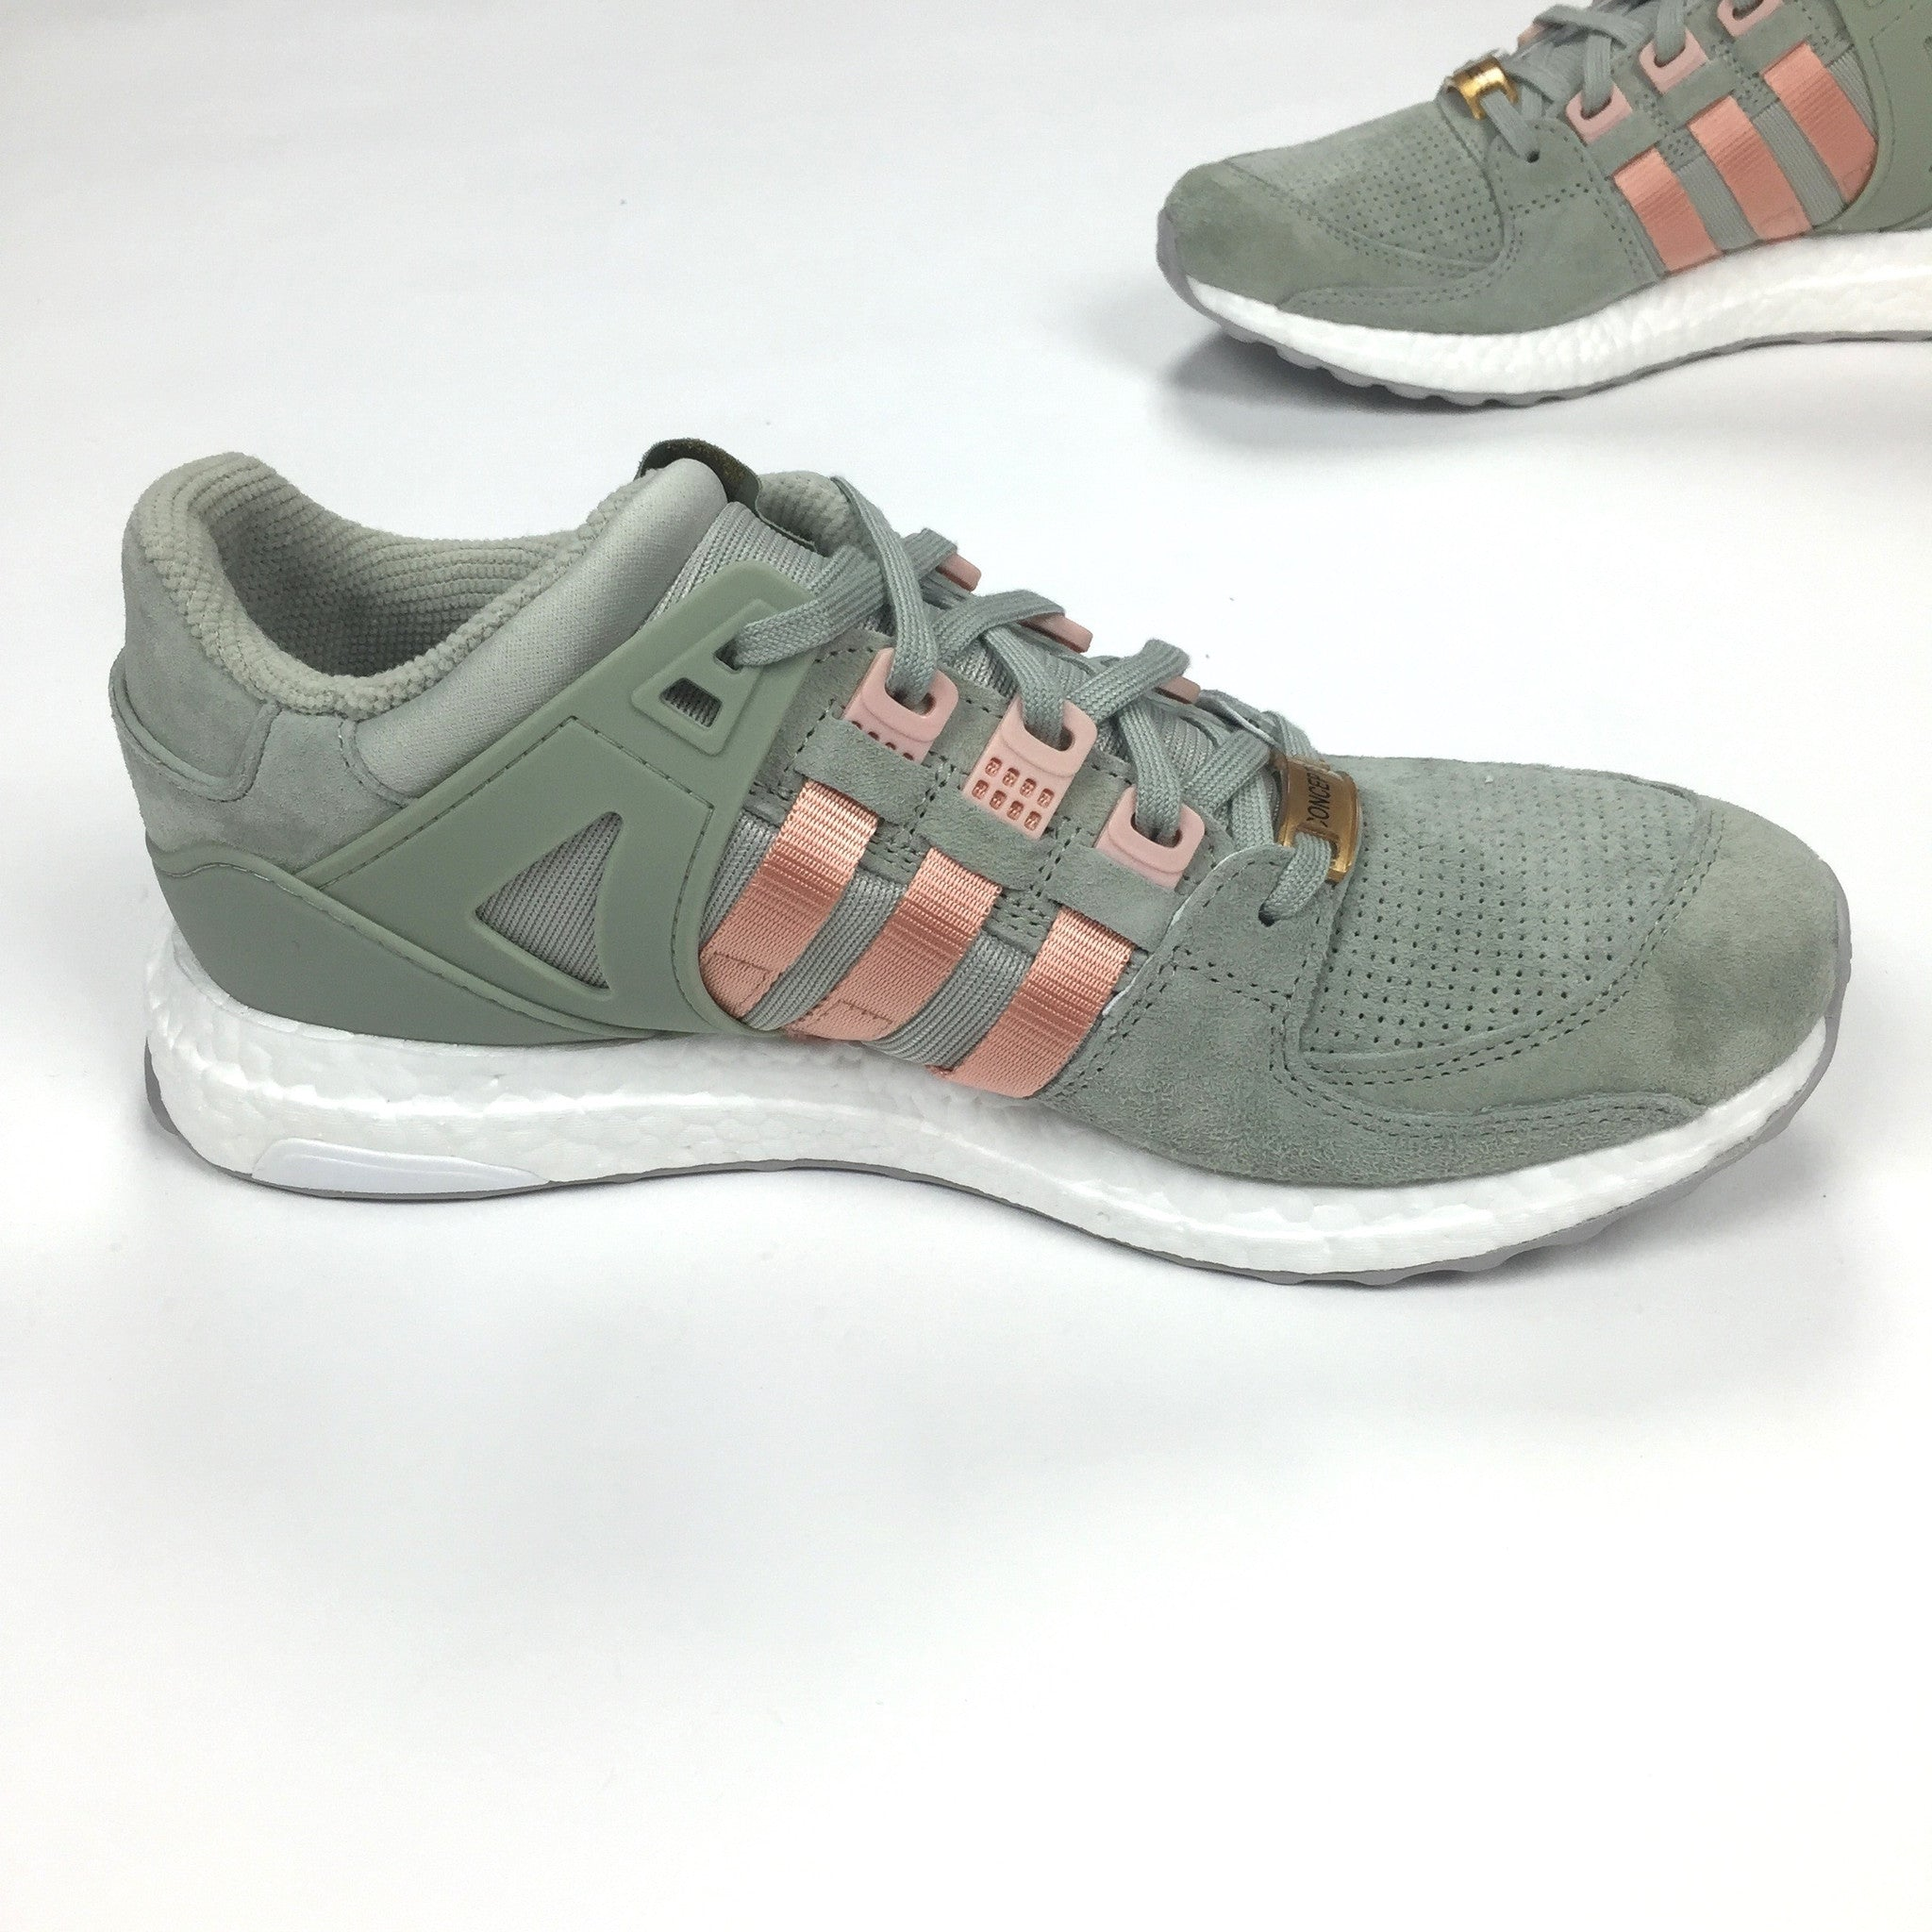 Adidas x Concepts - EQT Support 93 Ultra Boost